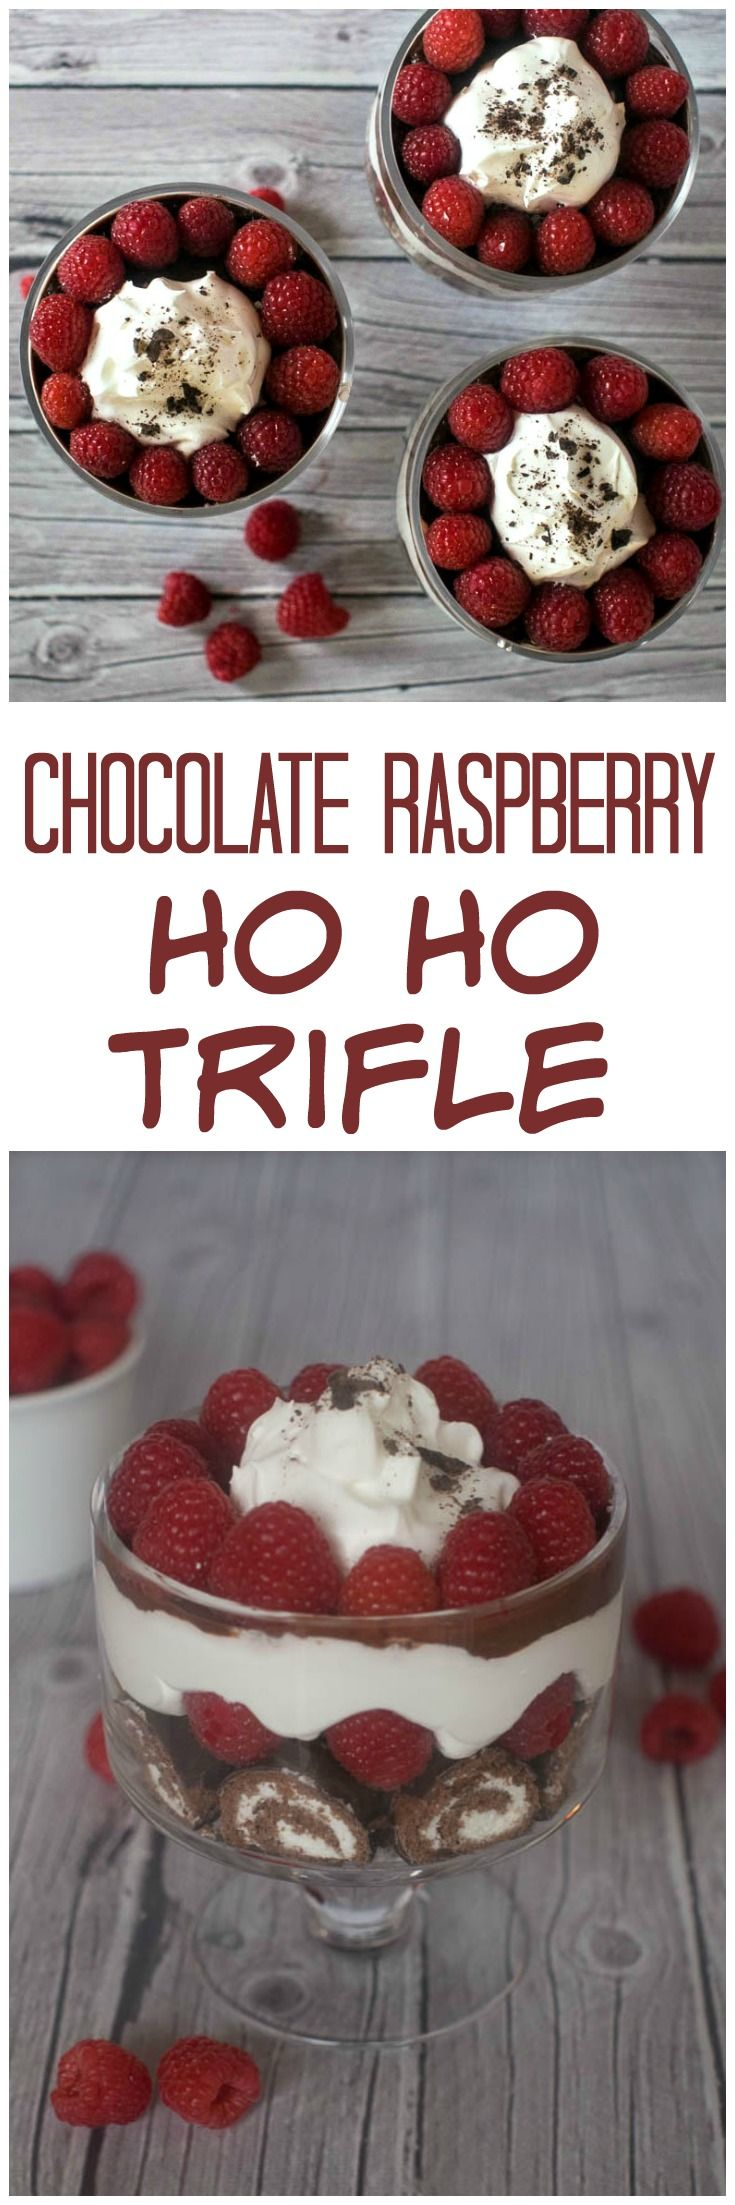 Chocolate Raspberry Ho Ho Trifle | Easy Dessert | Valentine's Day | HoHo | Trifle | 15 Minute Dessert | 5 Ingredient Dessert | Raspberries